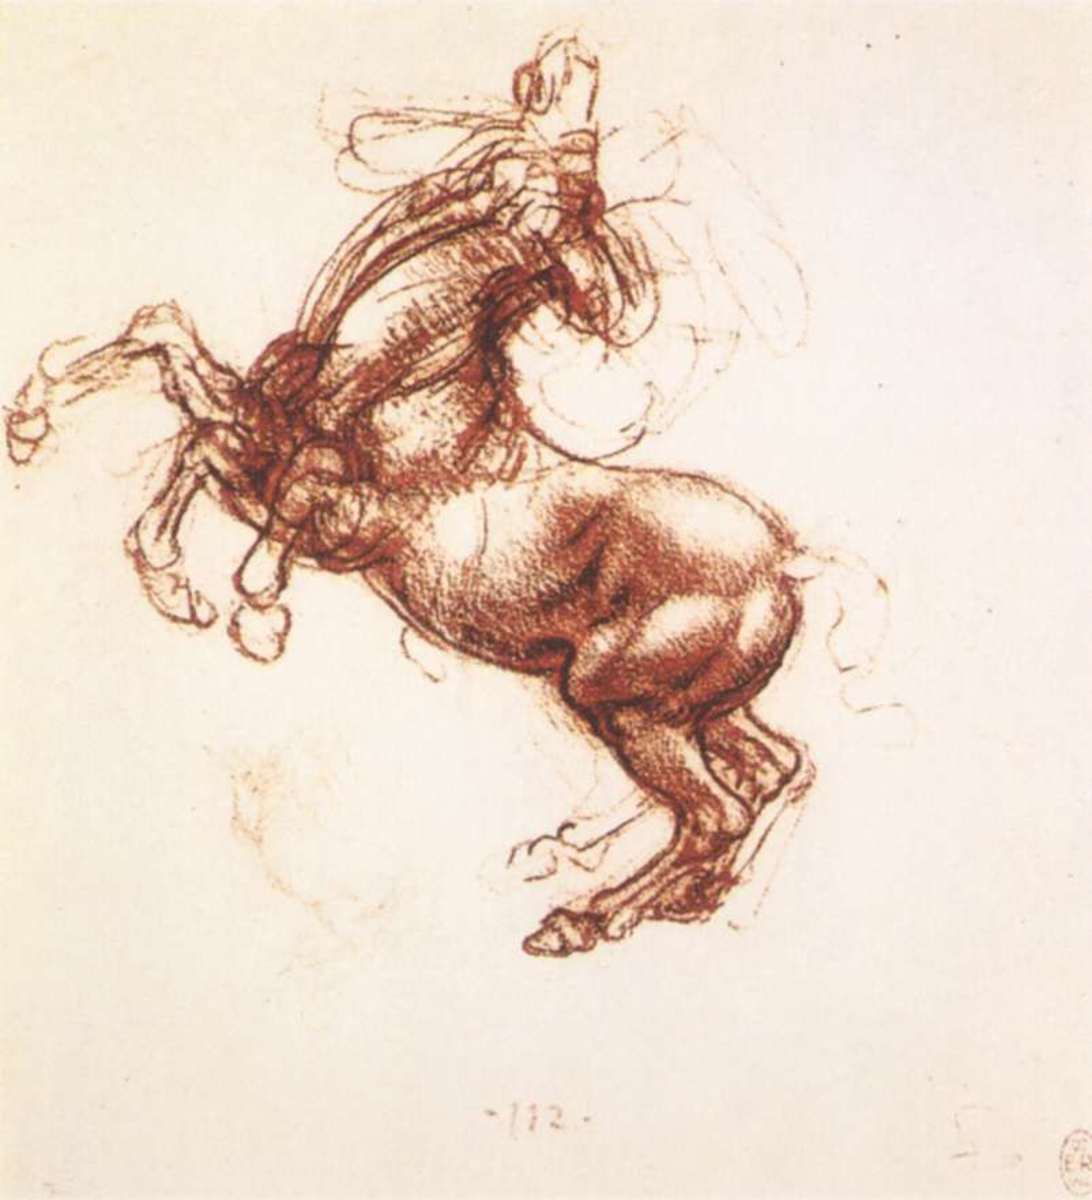 Da Vinci made many drawings during his study to create a beautiful horse.